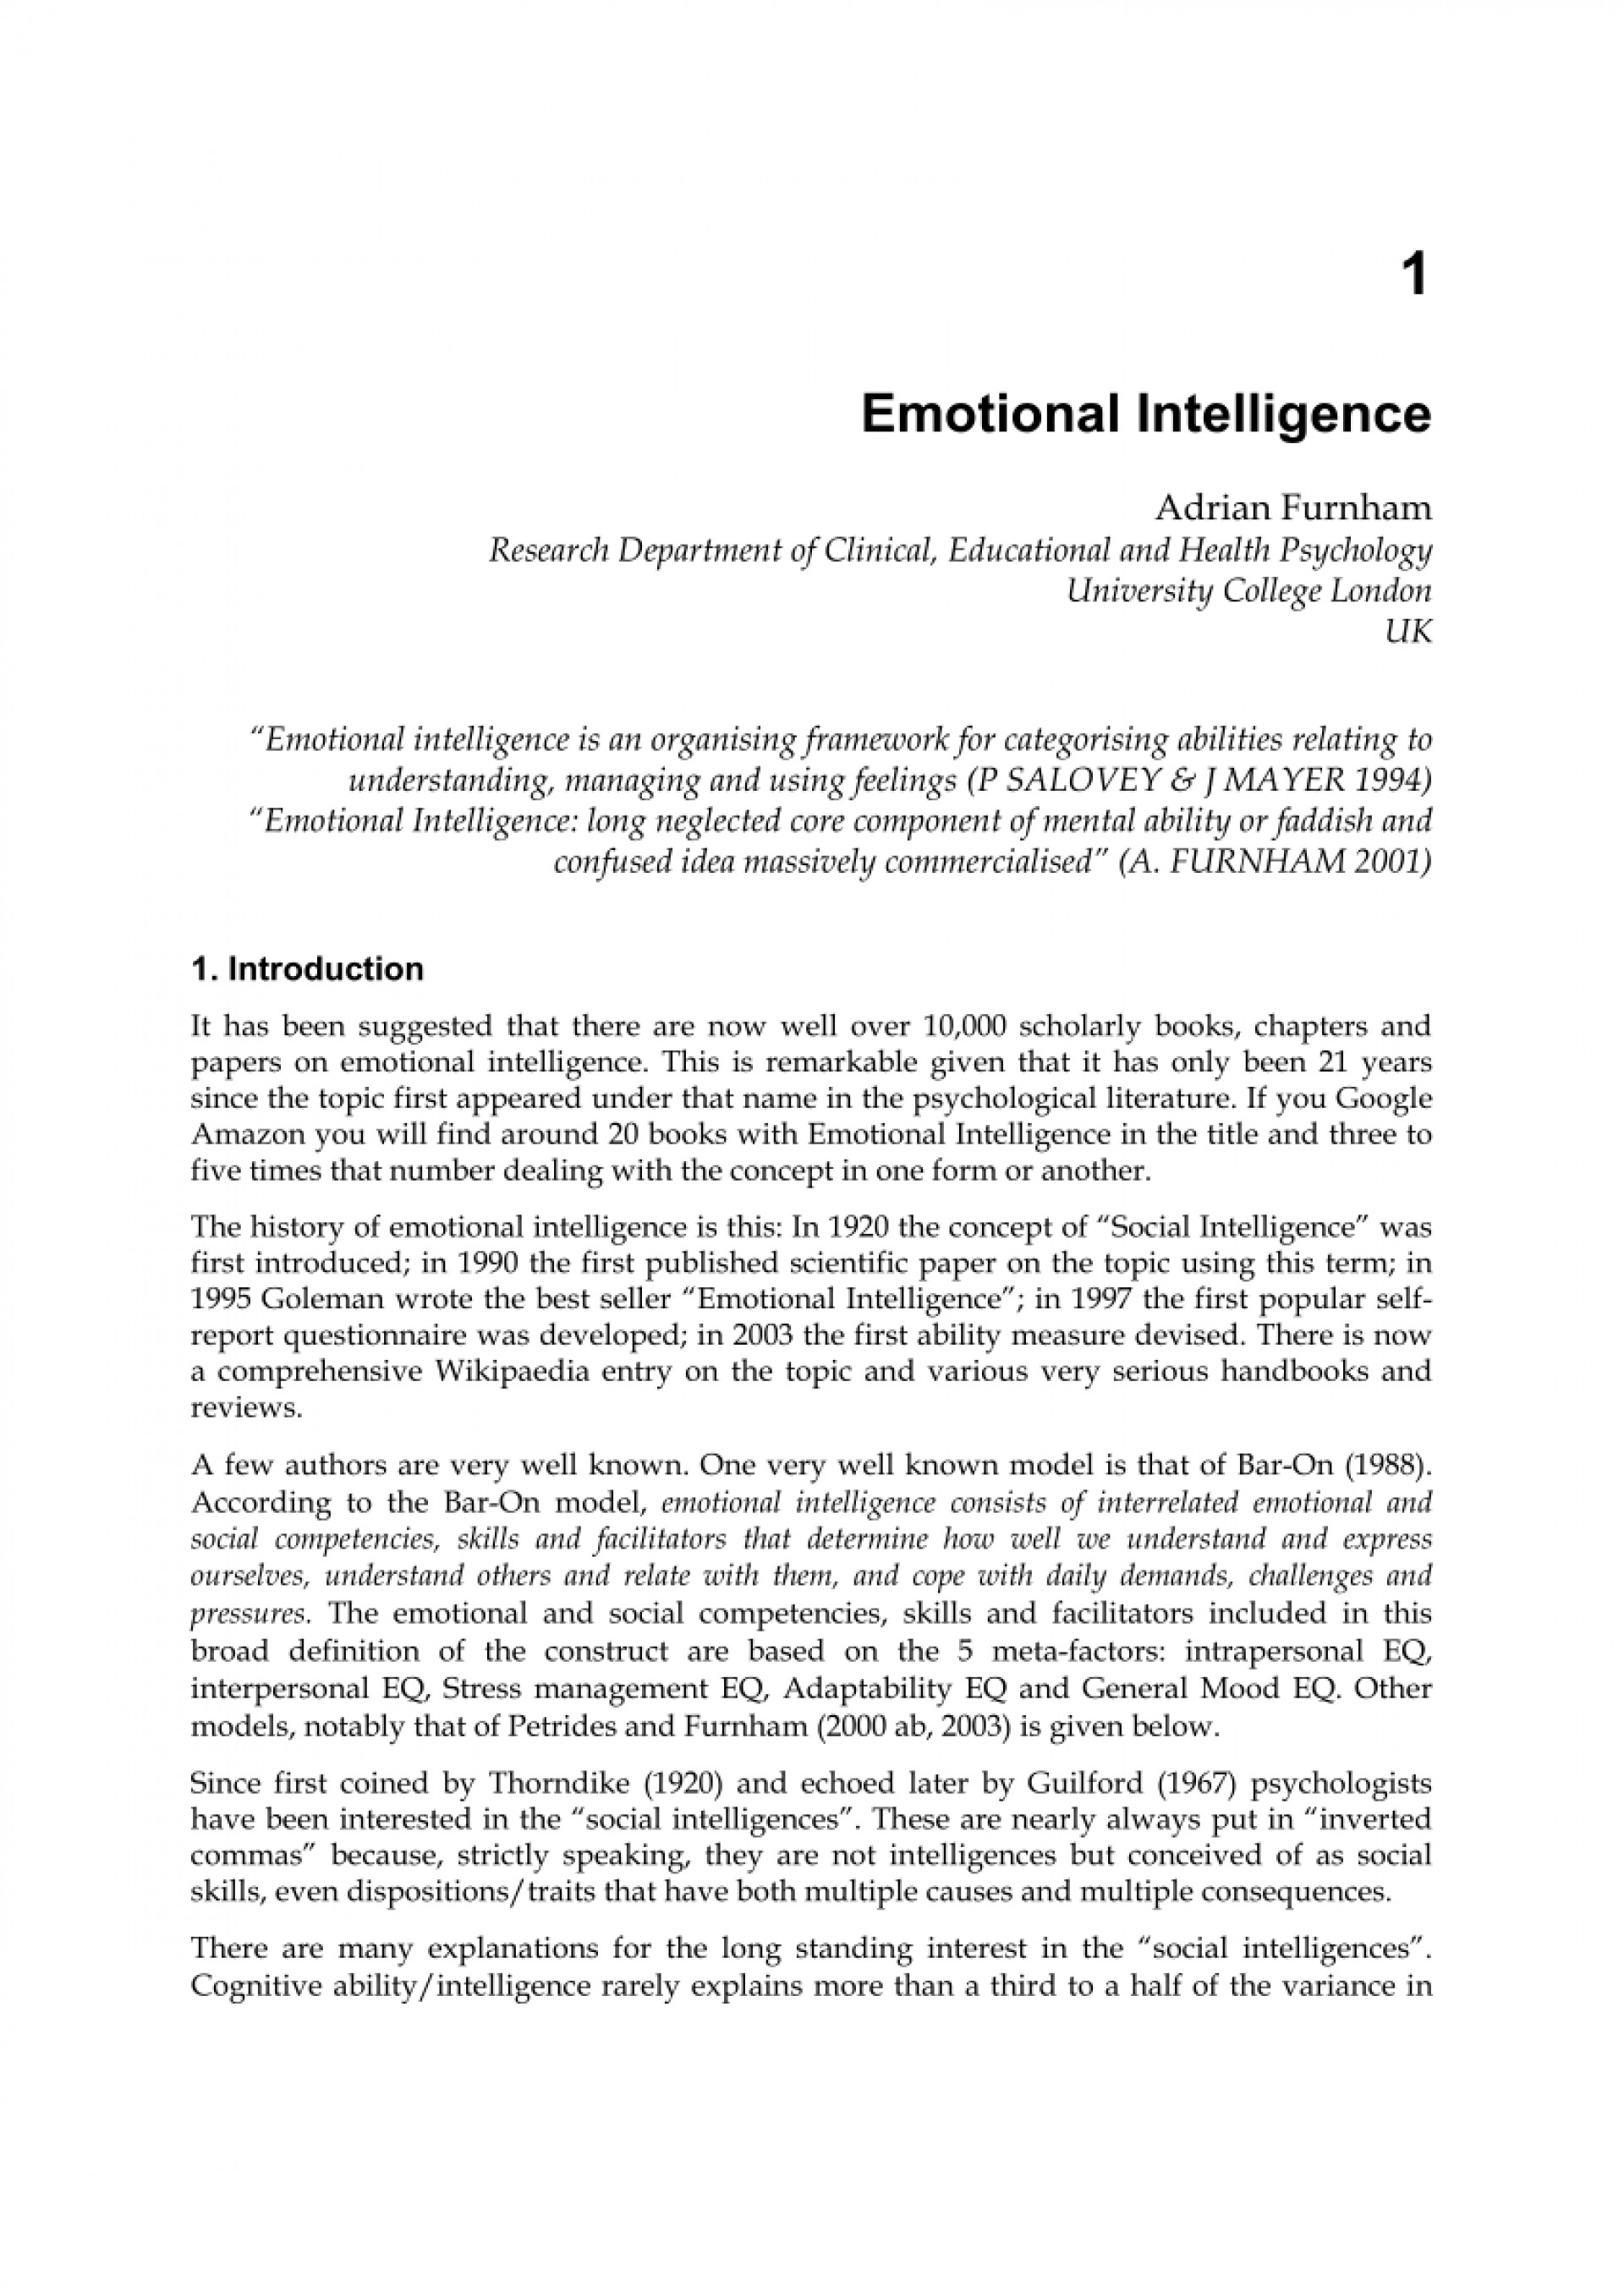 001 Emotional Intelligence Essay Largepreview Fantastic Paper Conclusion 1920